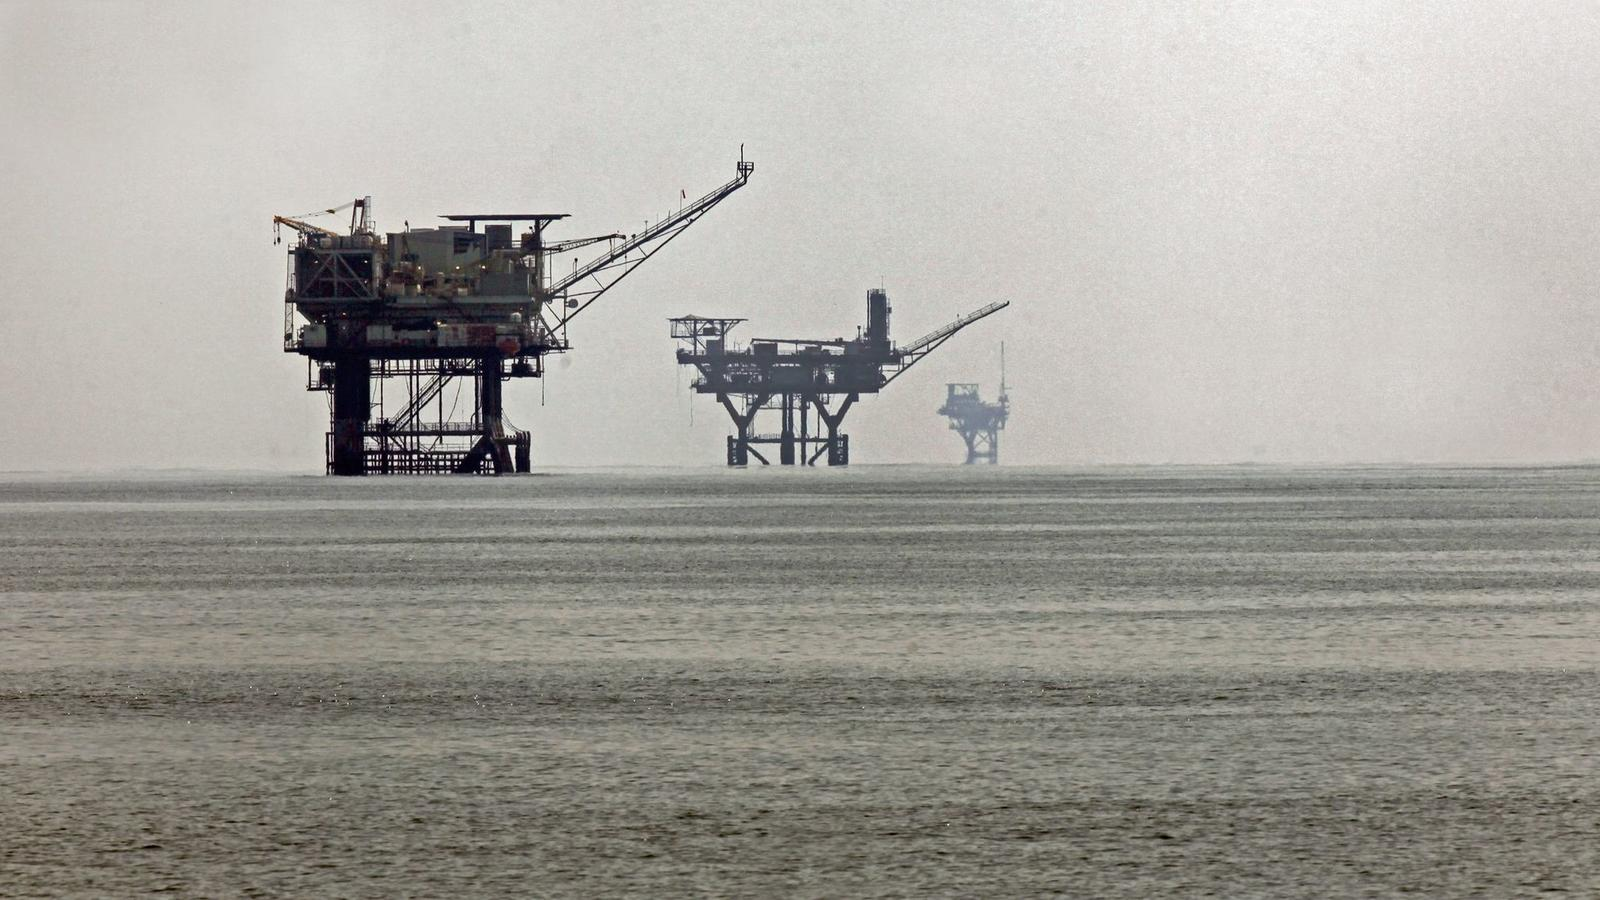 Oil rigs in the Gulf of Mexico in 2010. (Los Angeles Times)